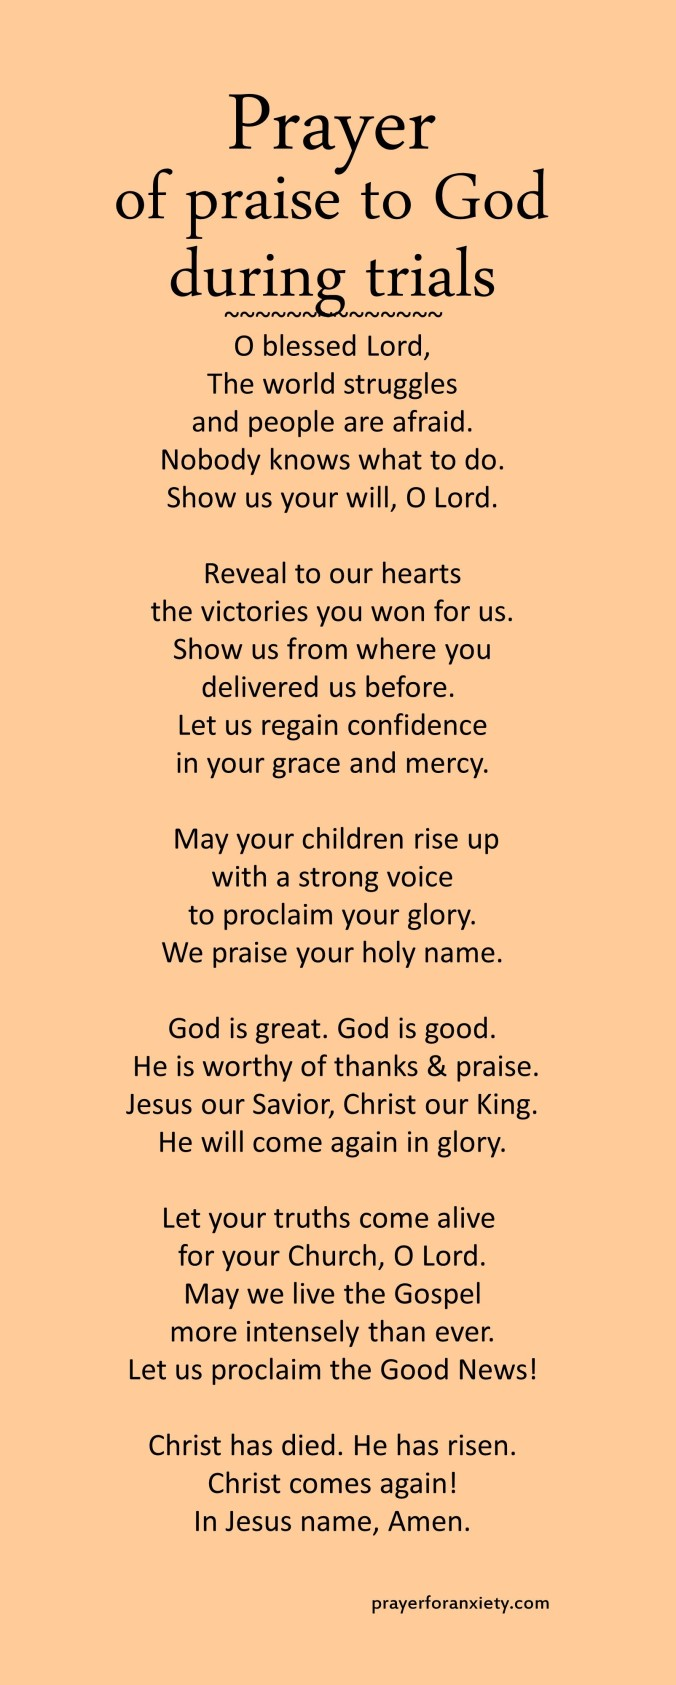 Prayer of praise to God during trials